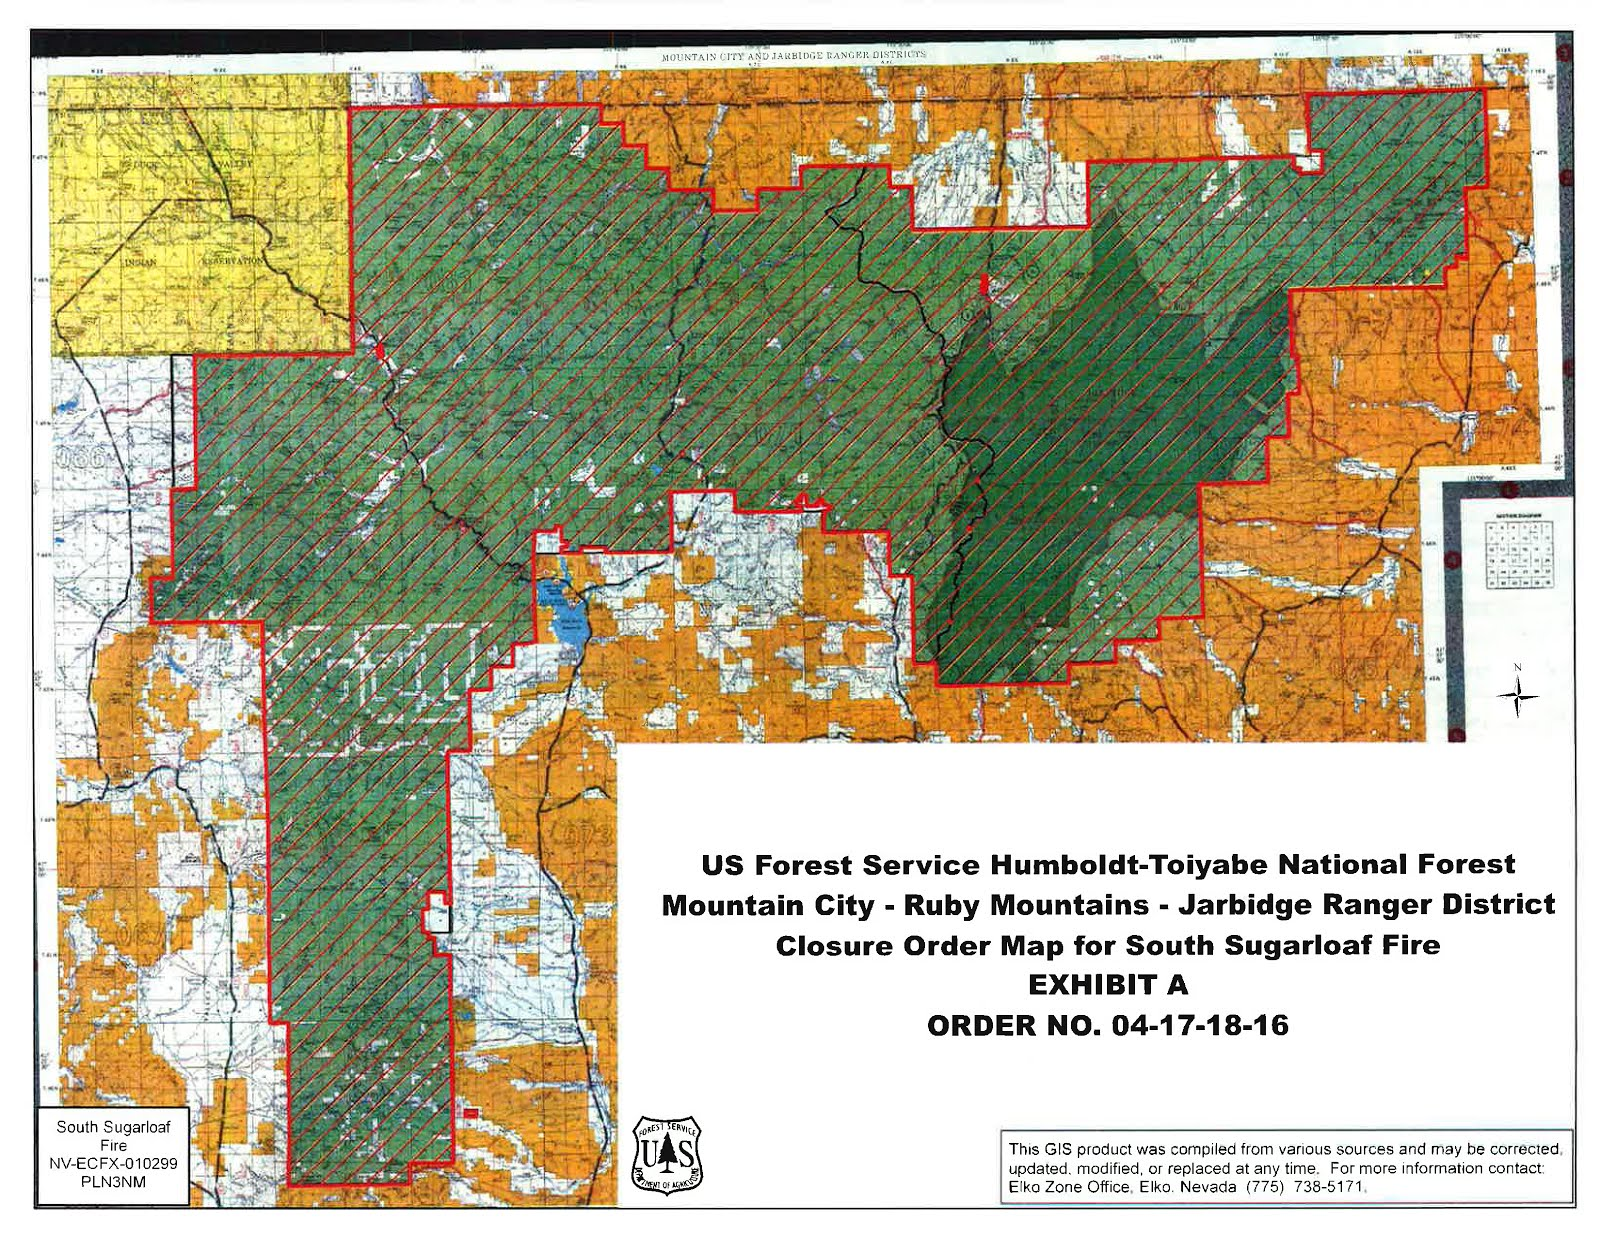 clarification on the humboldt toiyabe national forest s area closure for the south sugarloaf fire